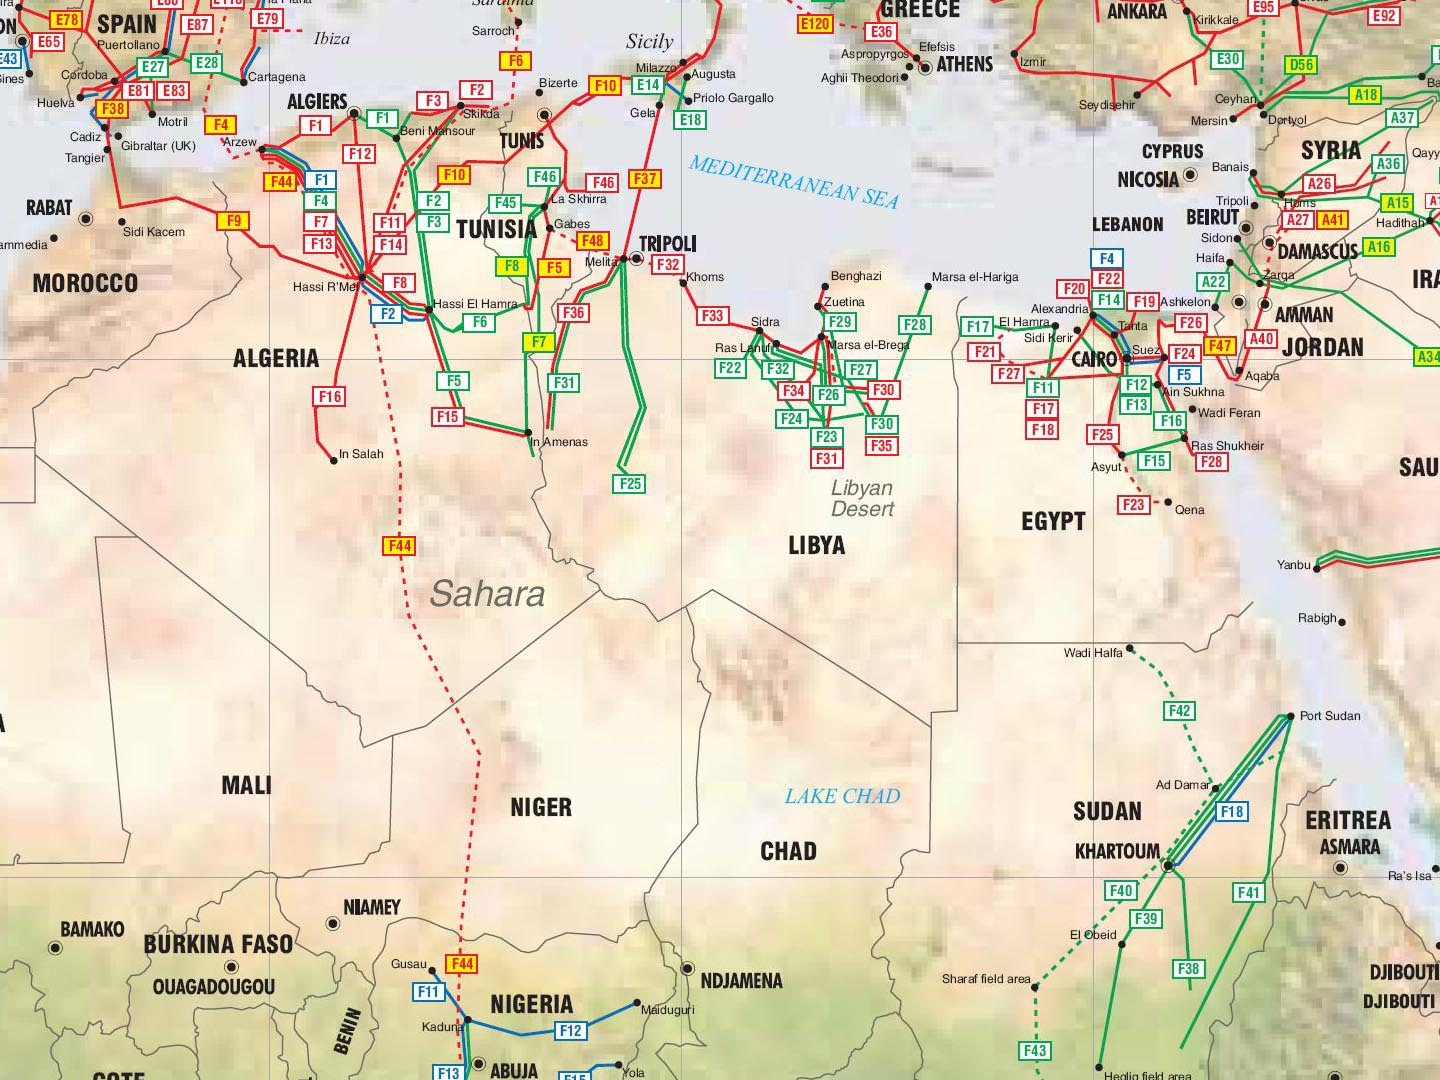 North Africa Pipelines Map Crude Oil Petroleum Pipelines